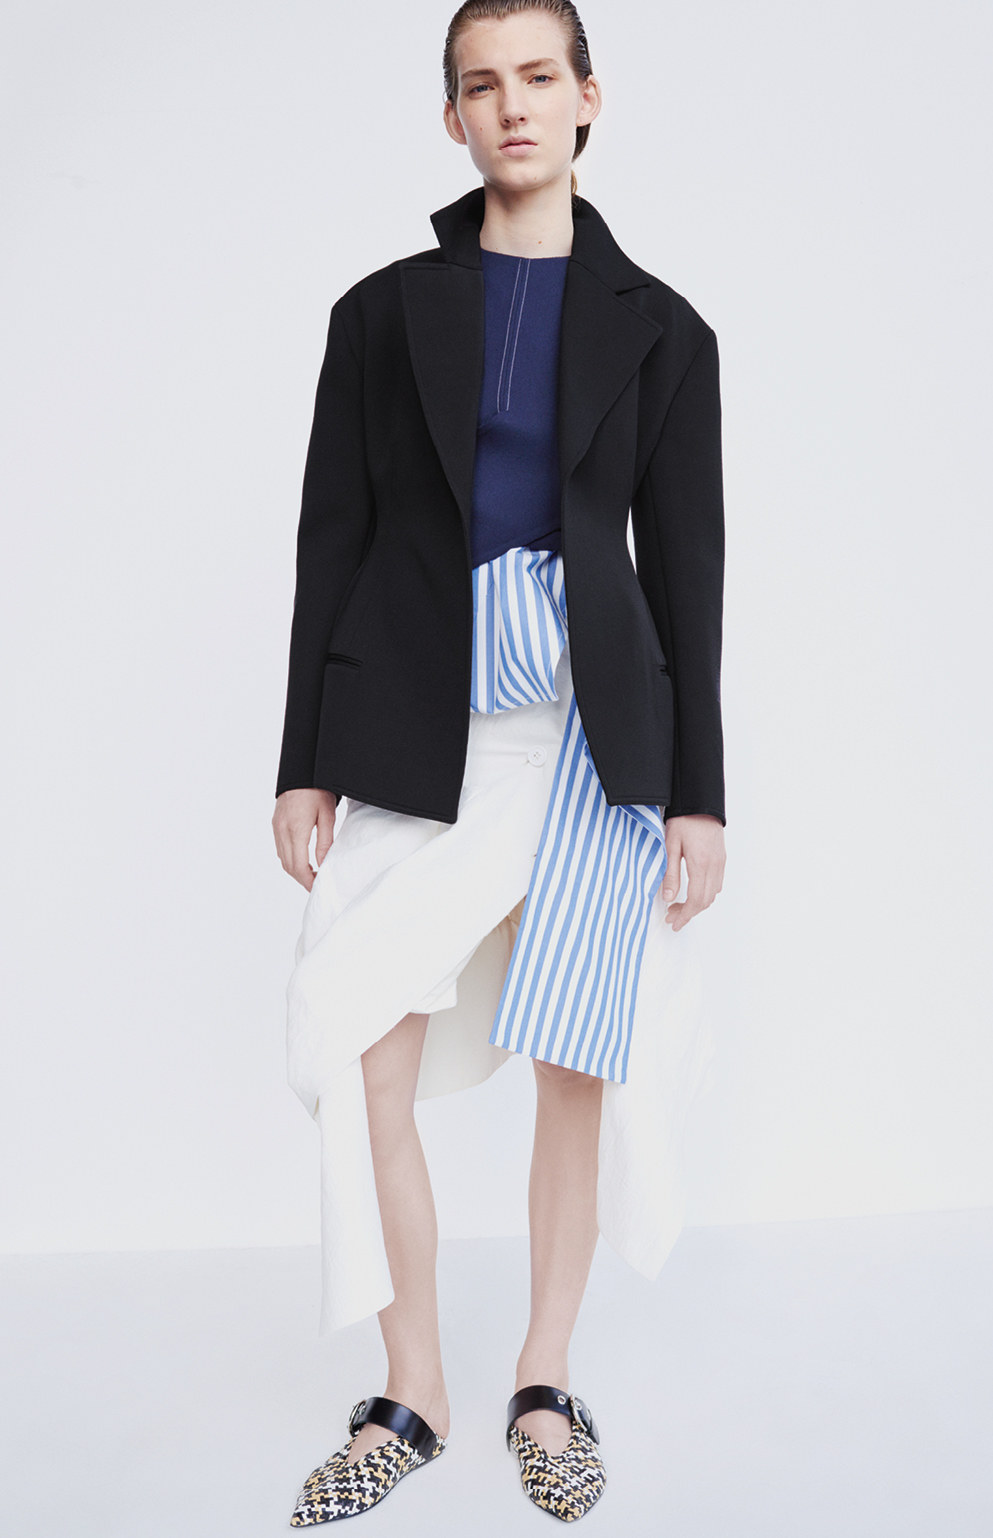 03-celine-resort-2016.jpg